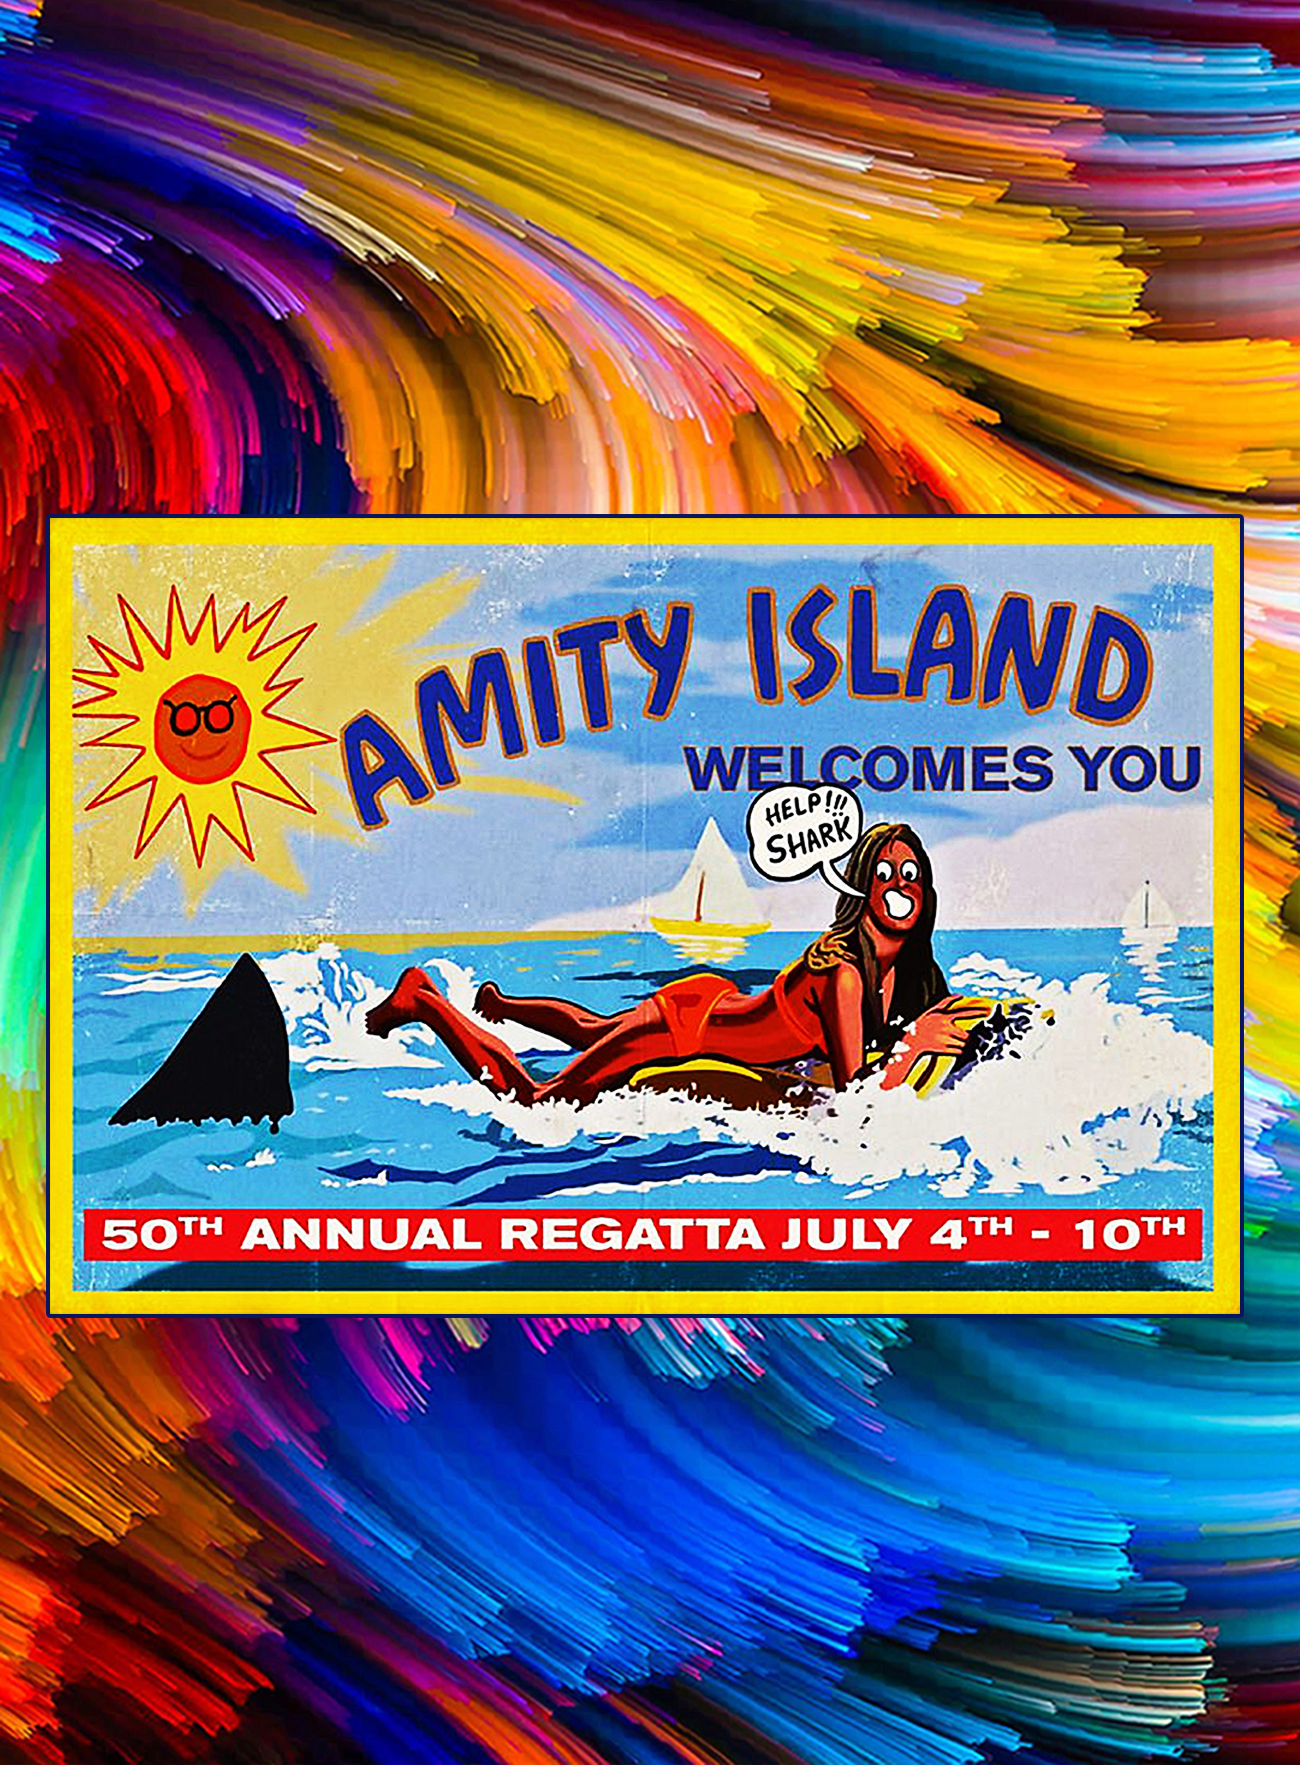 Amity island welcomes you 50th annual regatta july 4th 10th poster - A4